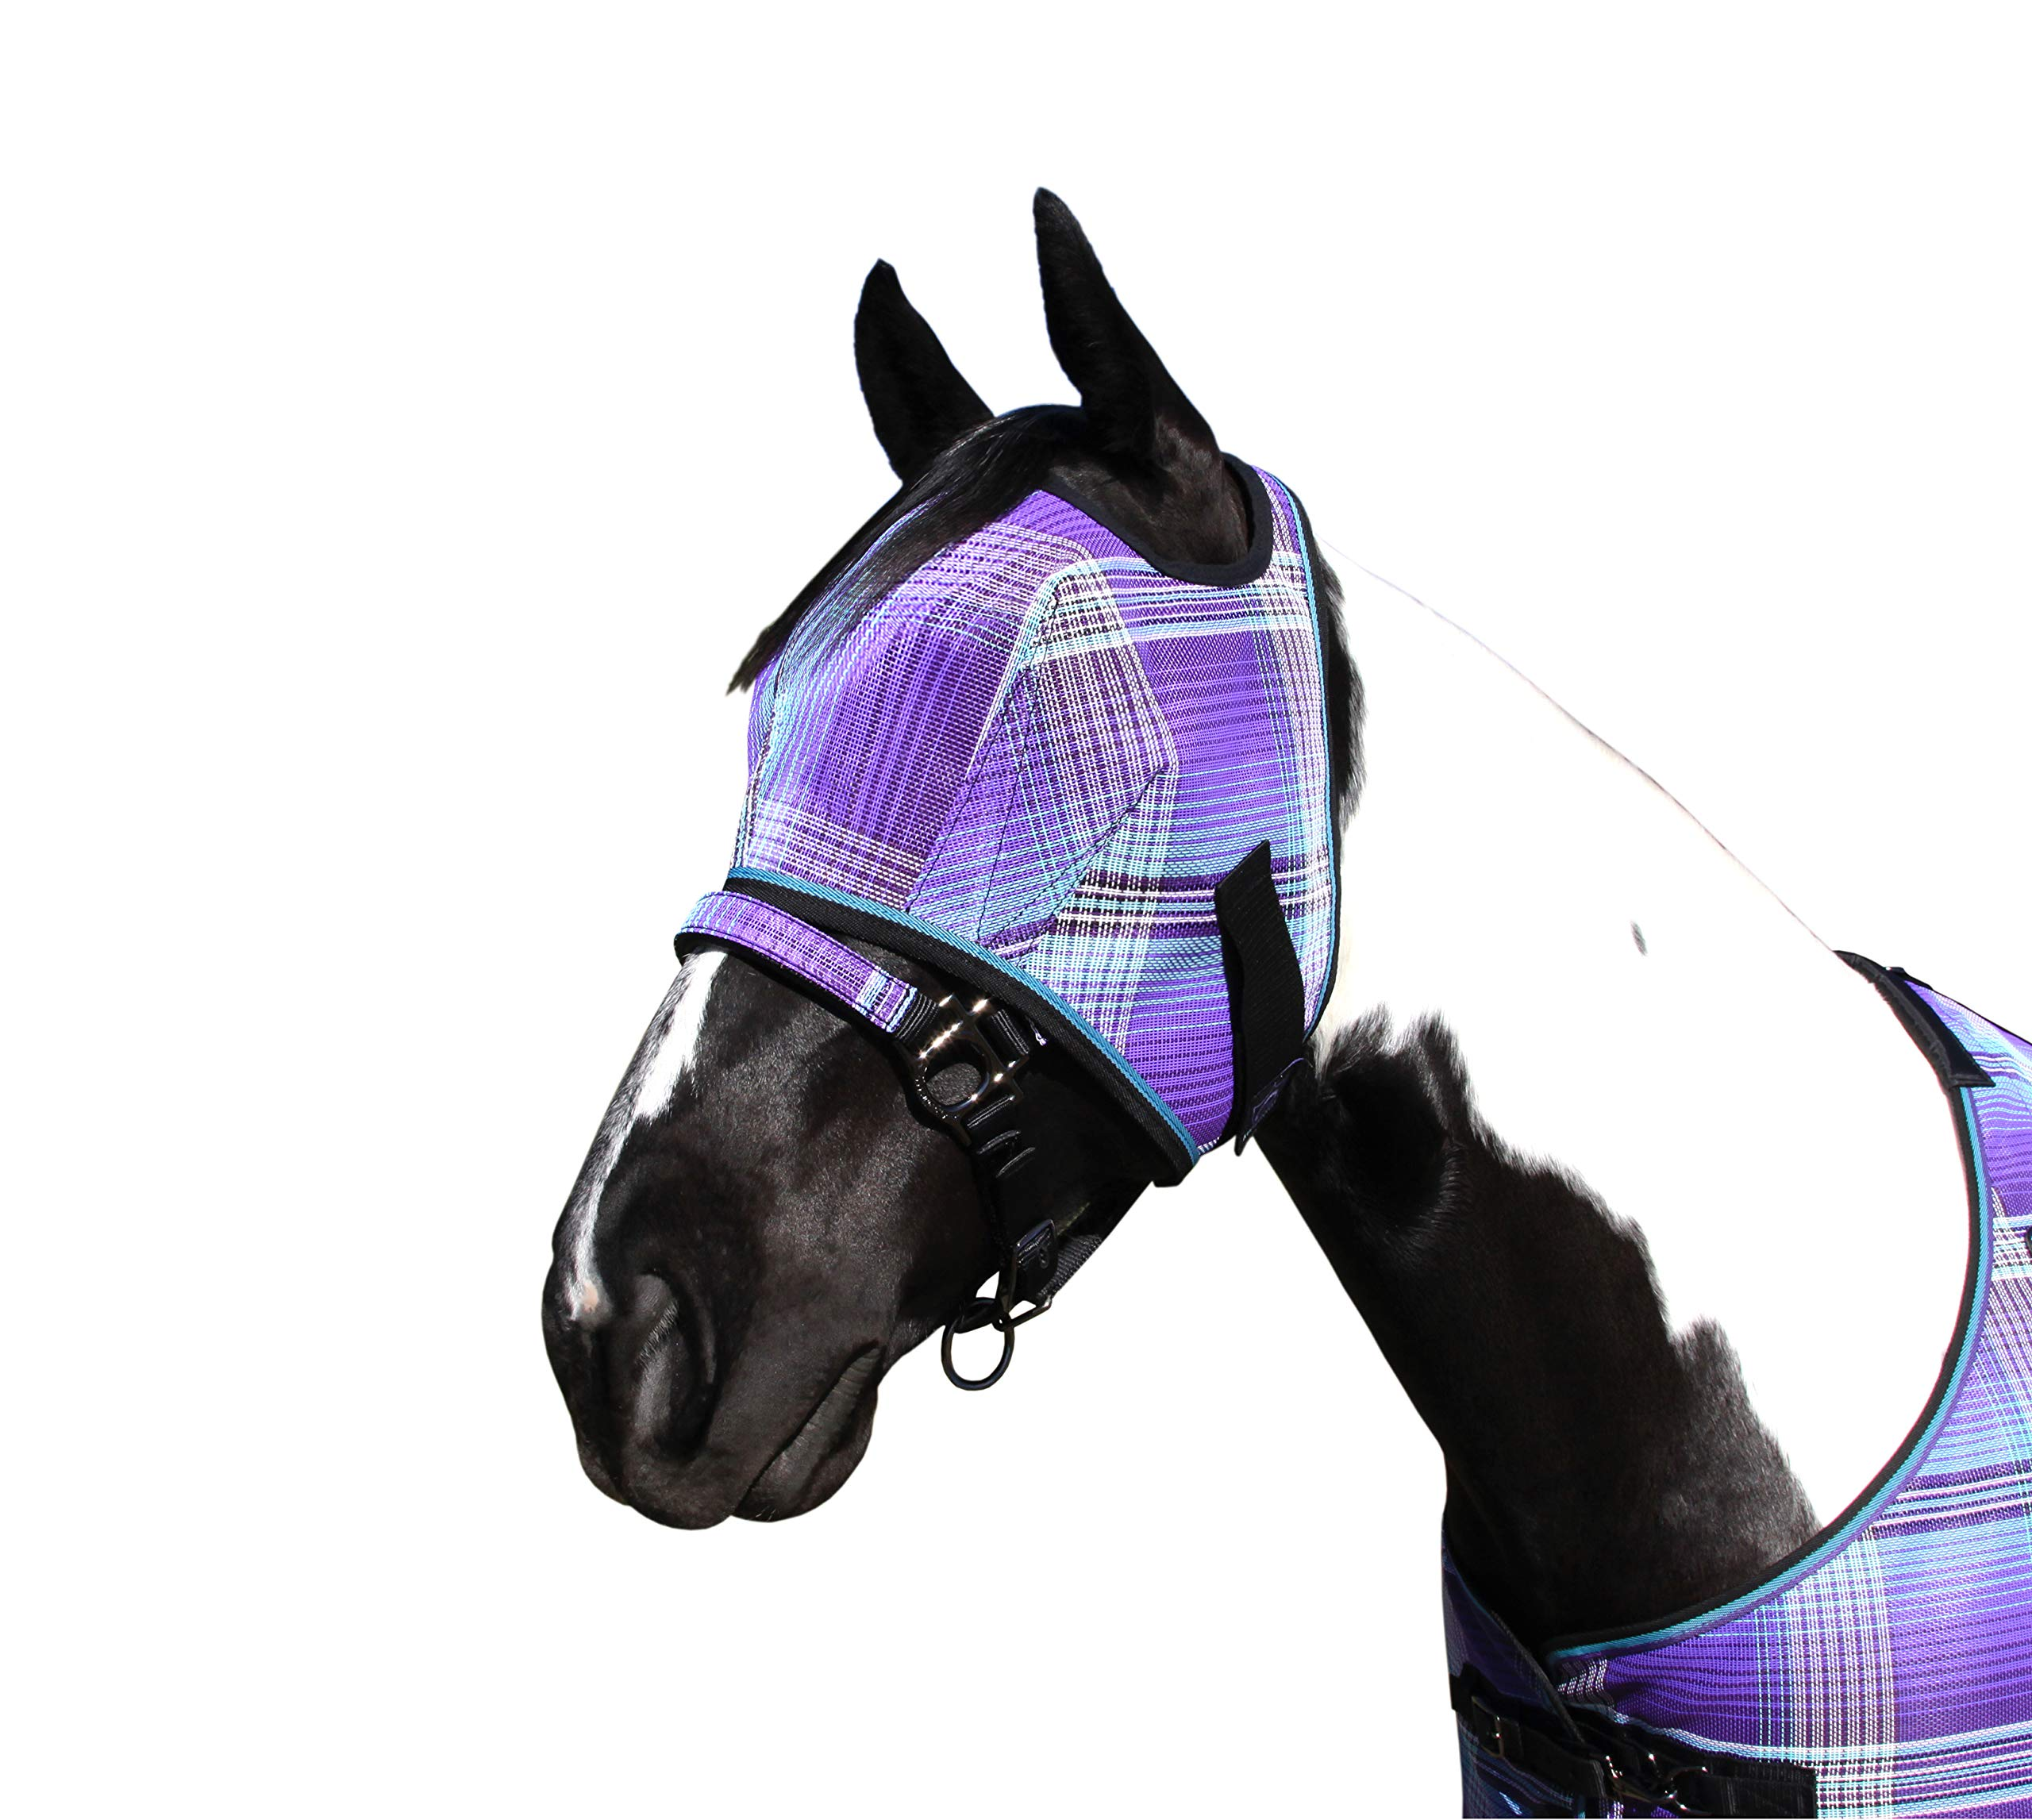 Kensington Fly Mask Web Trim - Protects Horses Face and Eyes from Biting Insects and UV Rays While Allowing Full Visibility - Ears and Forelock Able to Come Through The Mask (Medium, Lavender Mint) by Kensington Protective Products